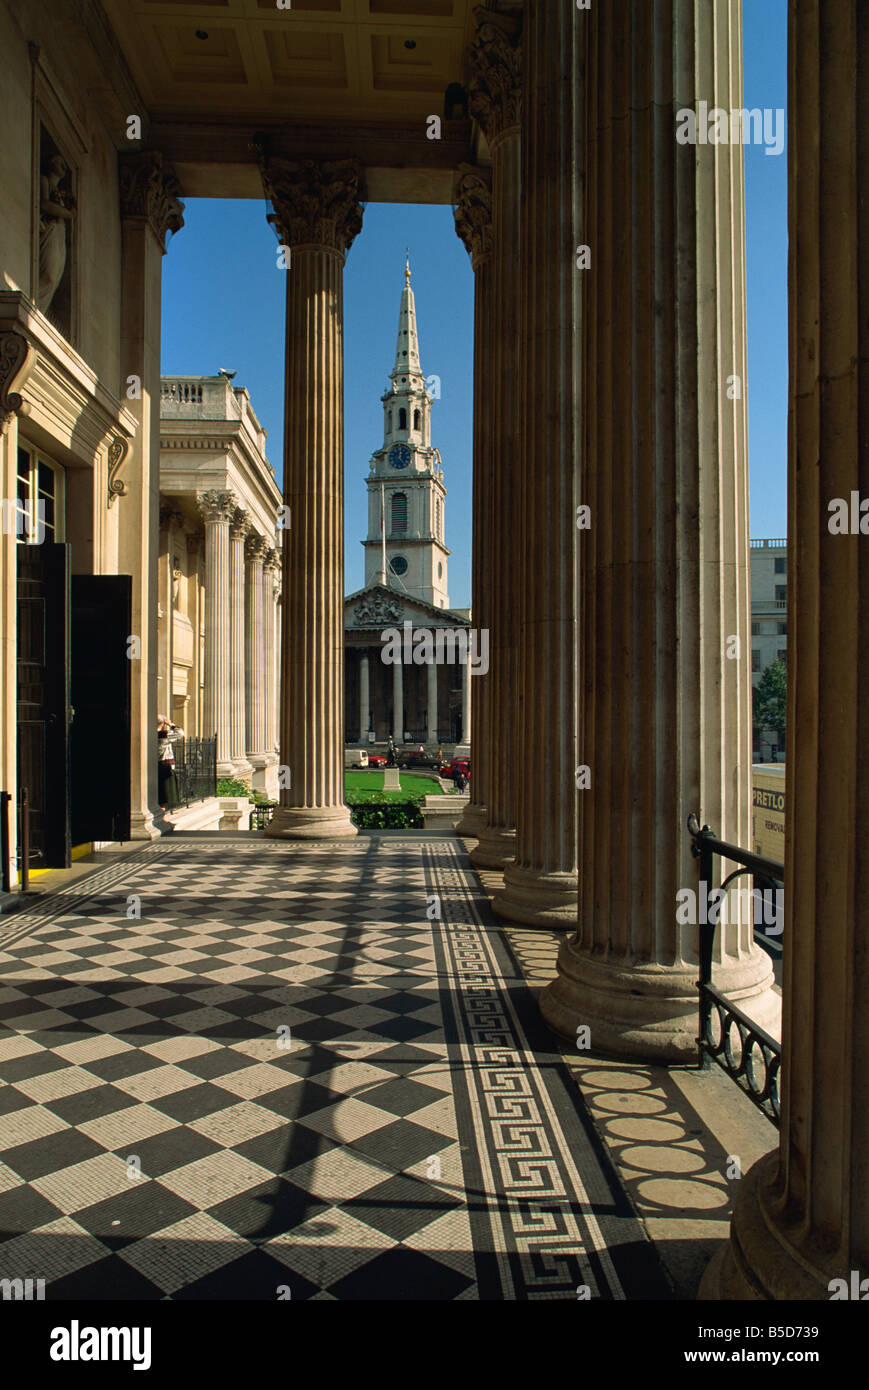 St. Martin in the Fields, seen from the National Gallery, Trafalgar Square, London, England, Europe - Stock Image